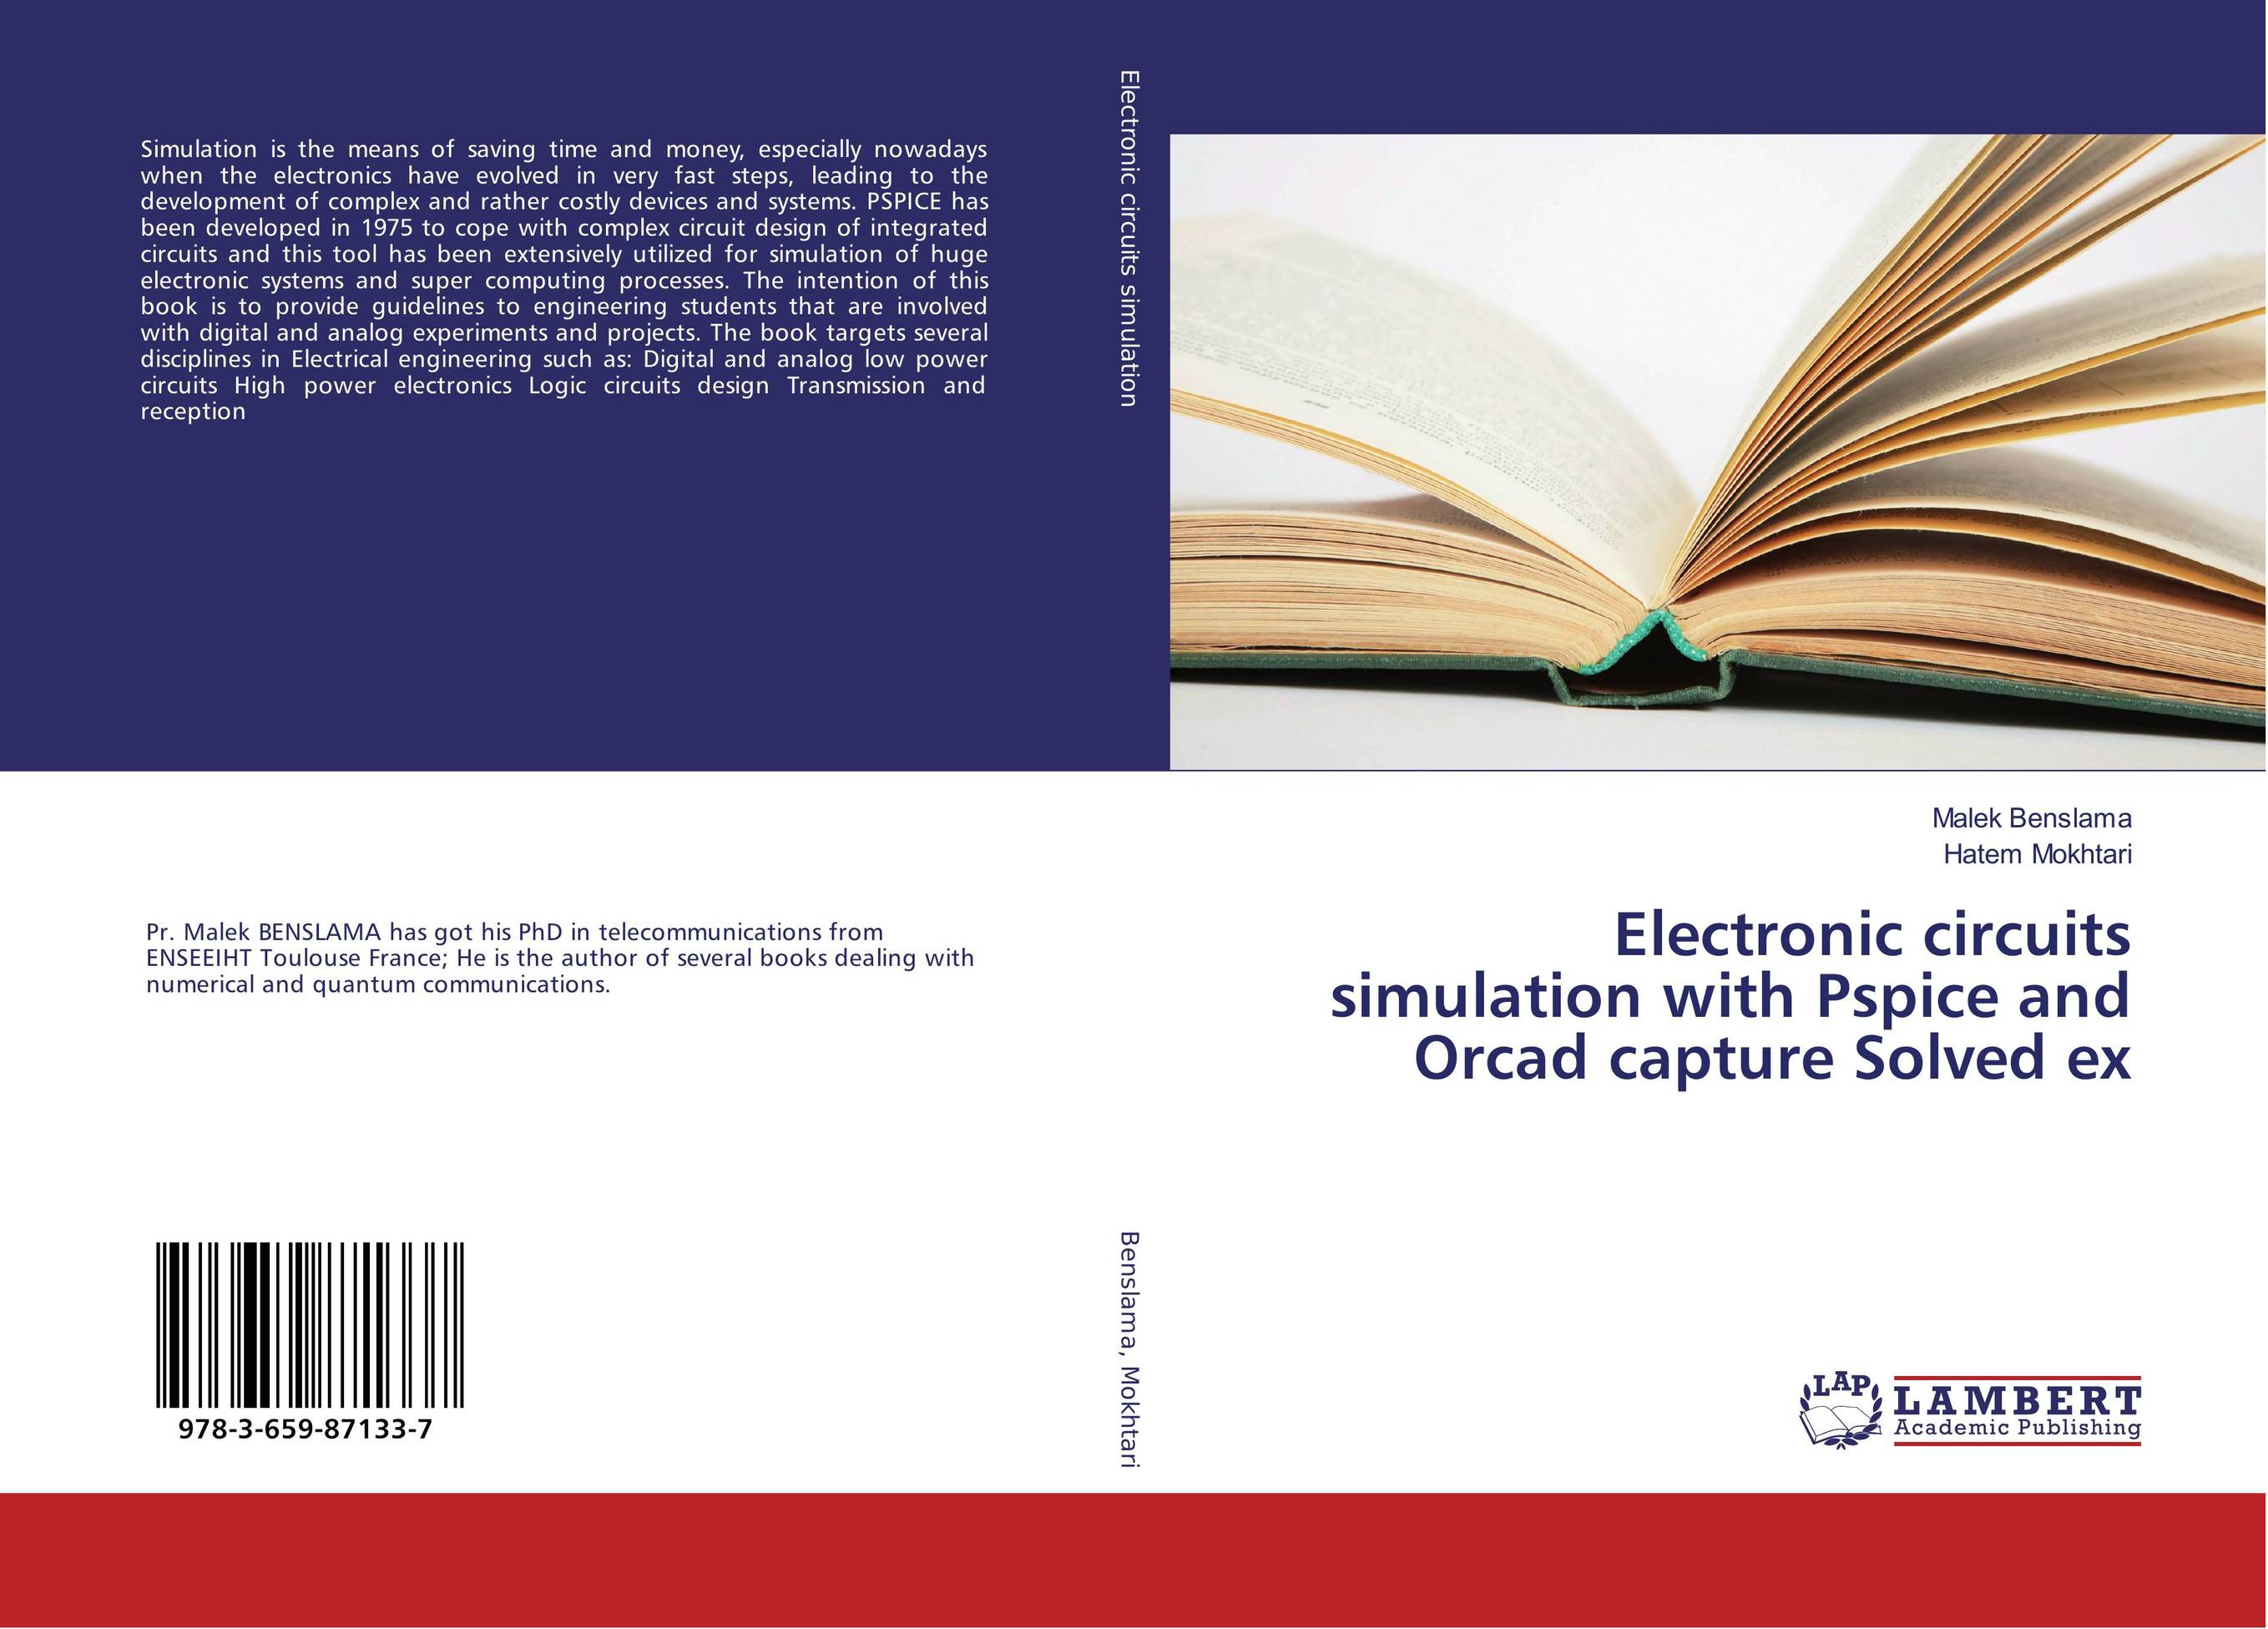 Electronic circuits simulation with Pspice and Orcad capture Solved ex molecular and nano electronics analysis design and simulation 17